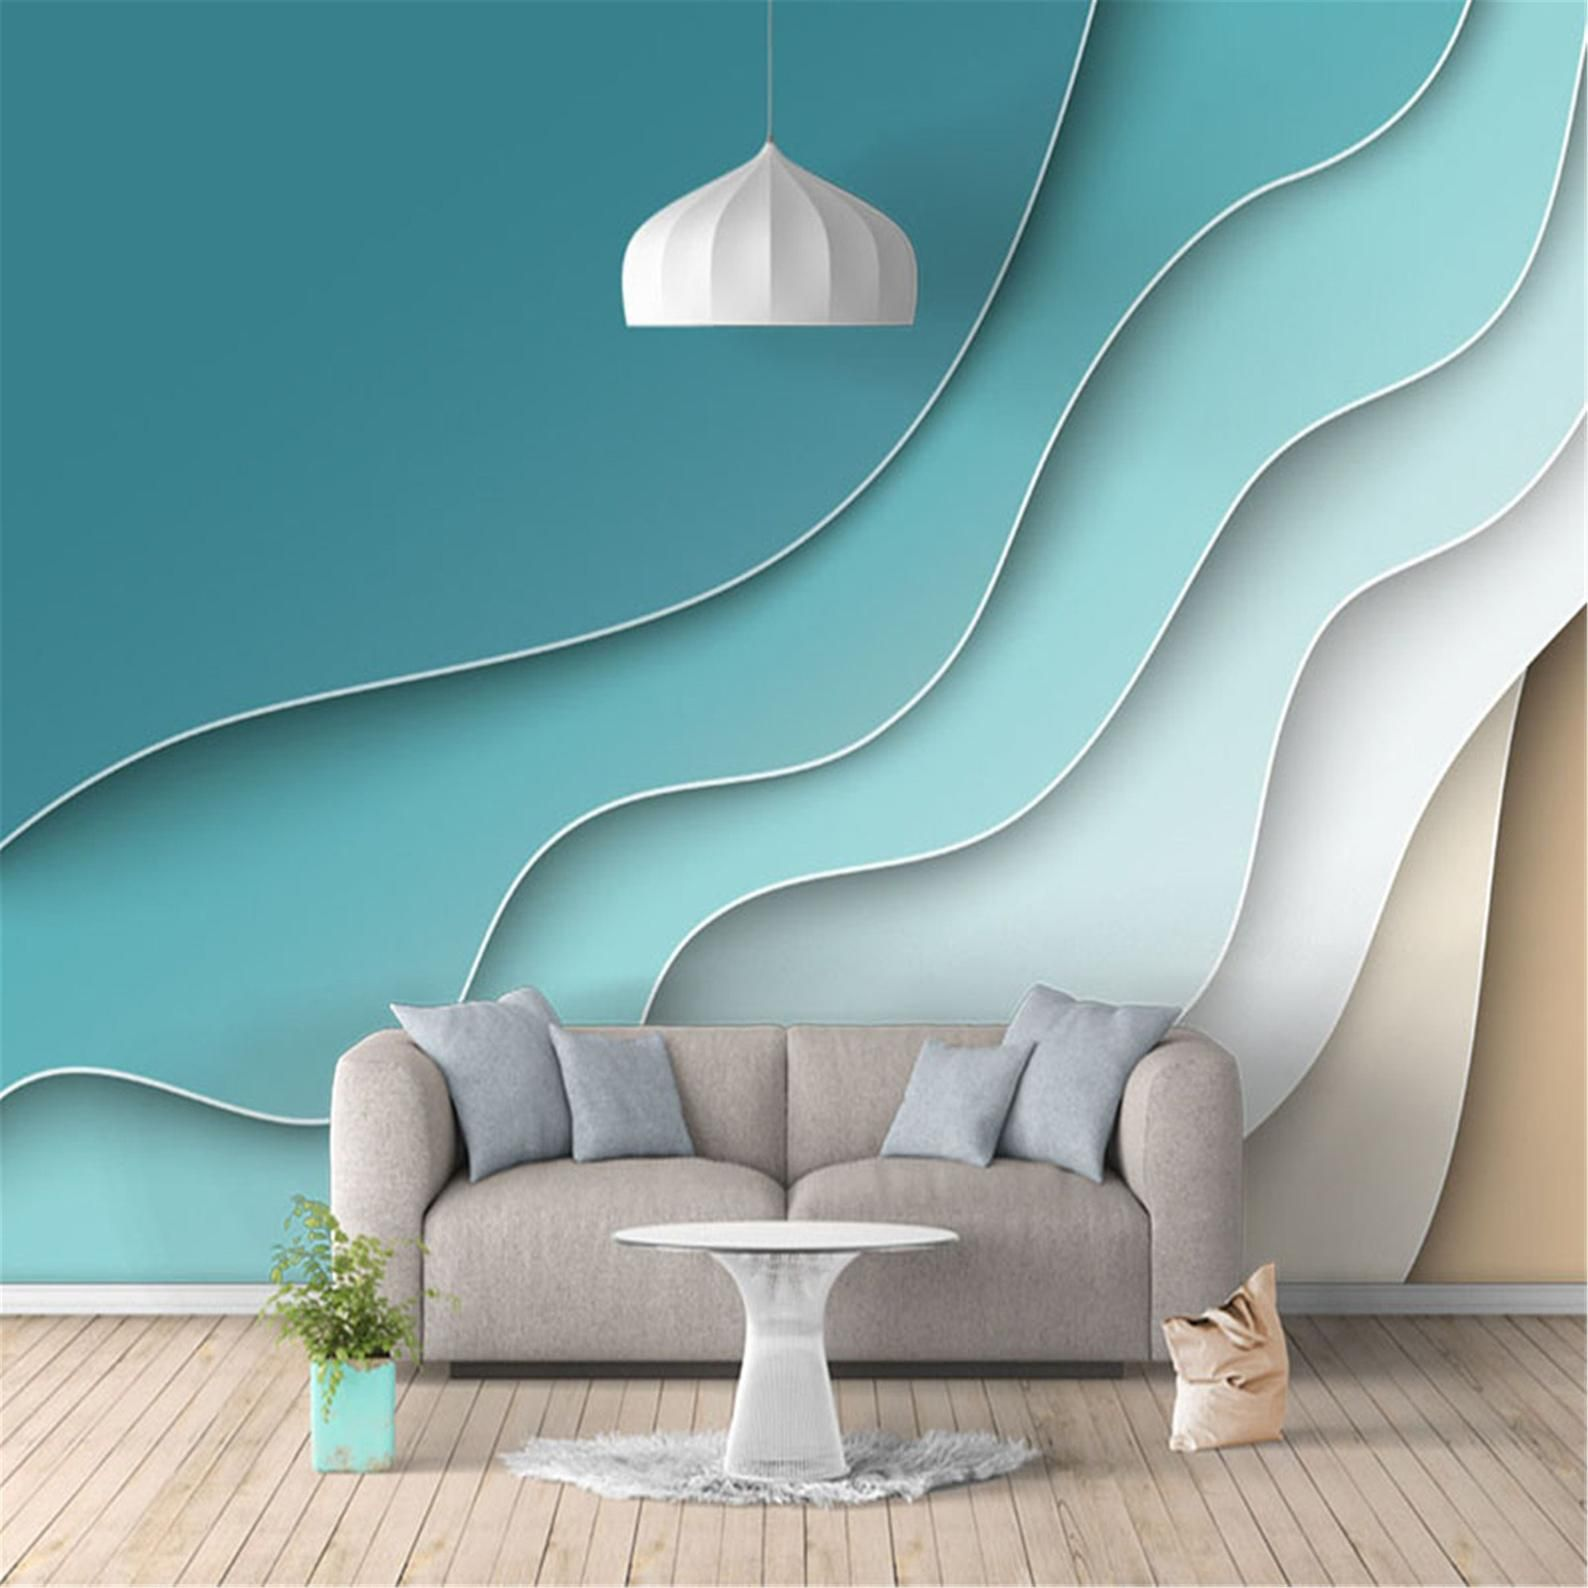 3d Wallpaper Modern Abstract Line Geometric Pattern Photo Wall Murals Living Room Bedroom Home Decor Background Wall Painting In 2021 Custom Photo Wallpaper Modern Wallpaper Bedroom 3d Wallpaper For Walls